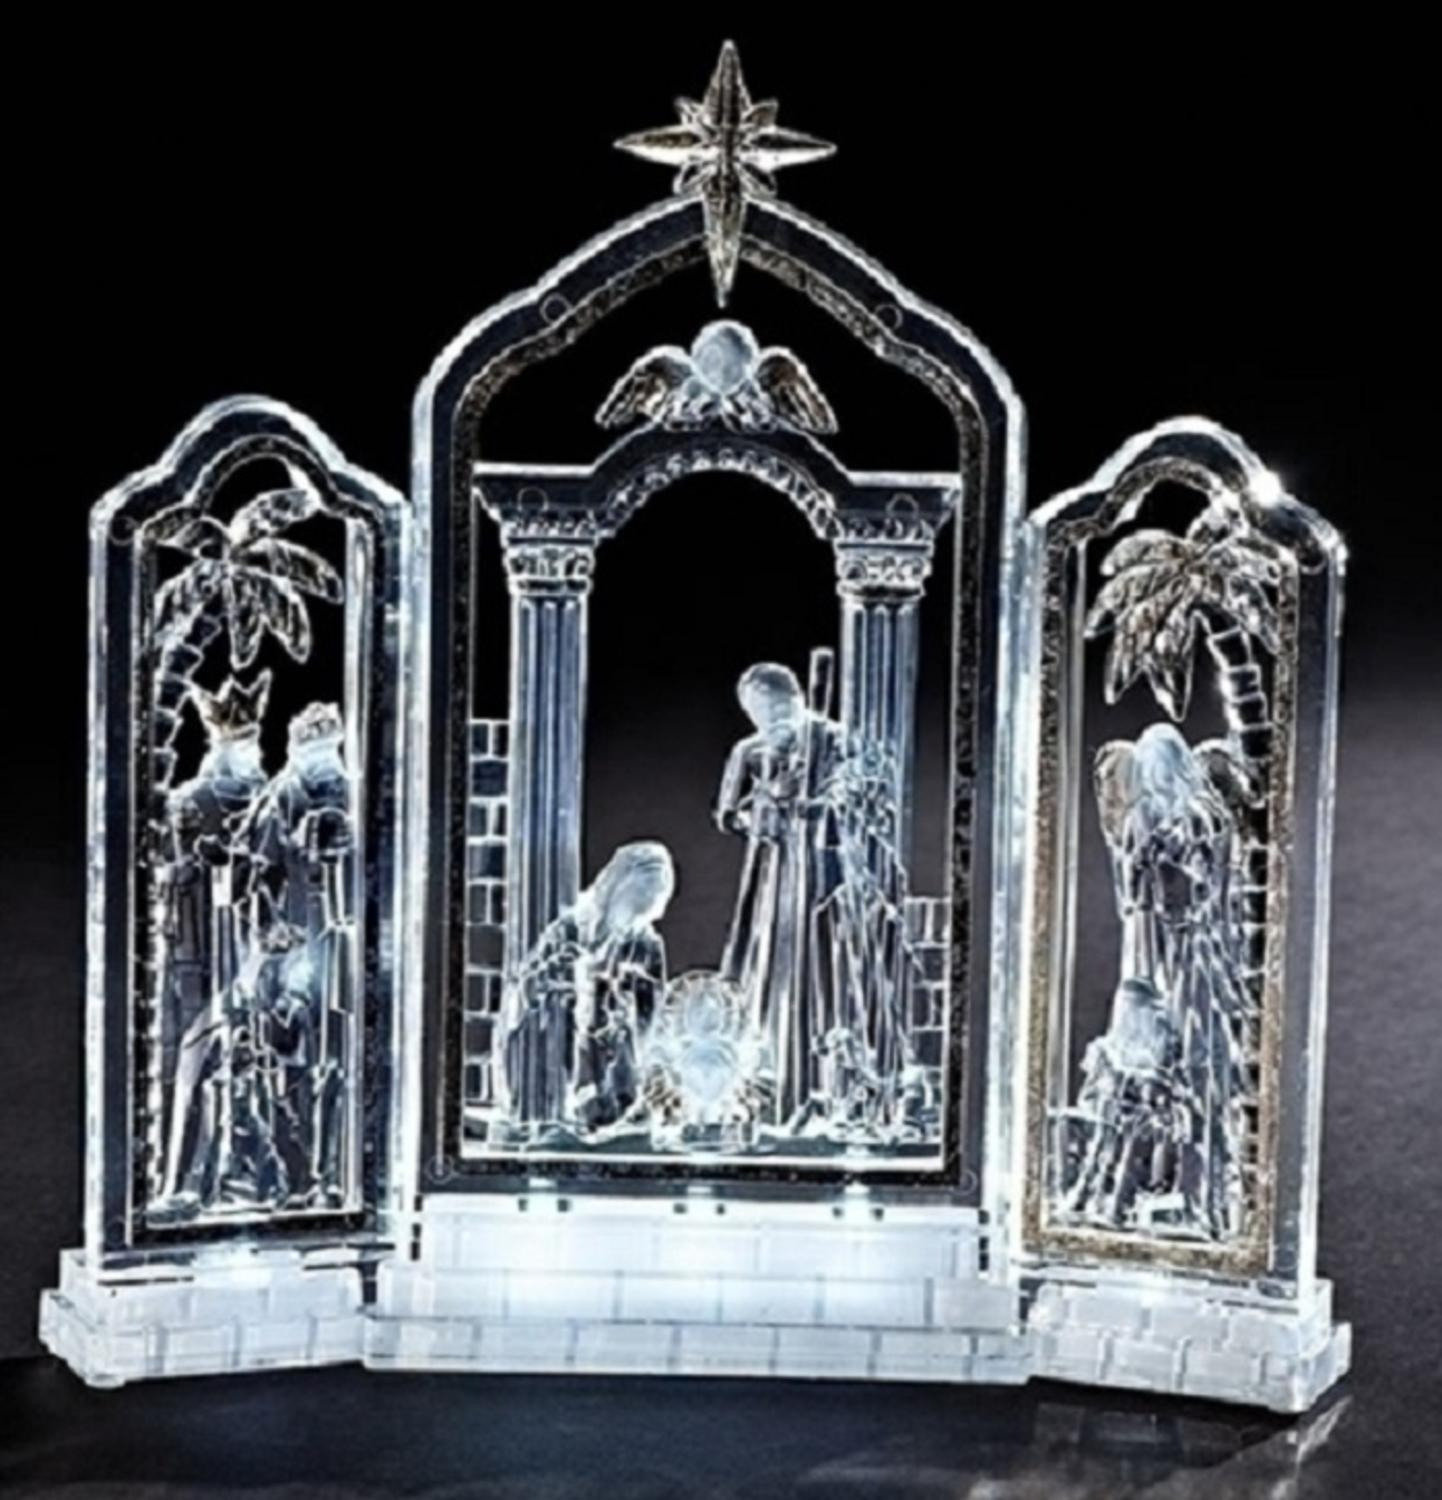 """10"""" Gold Leafed LED Lighted Religious Christmas Nativity Triptych Decoration - image 1 of 1"""